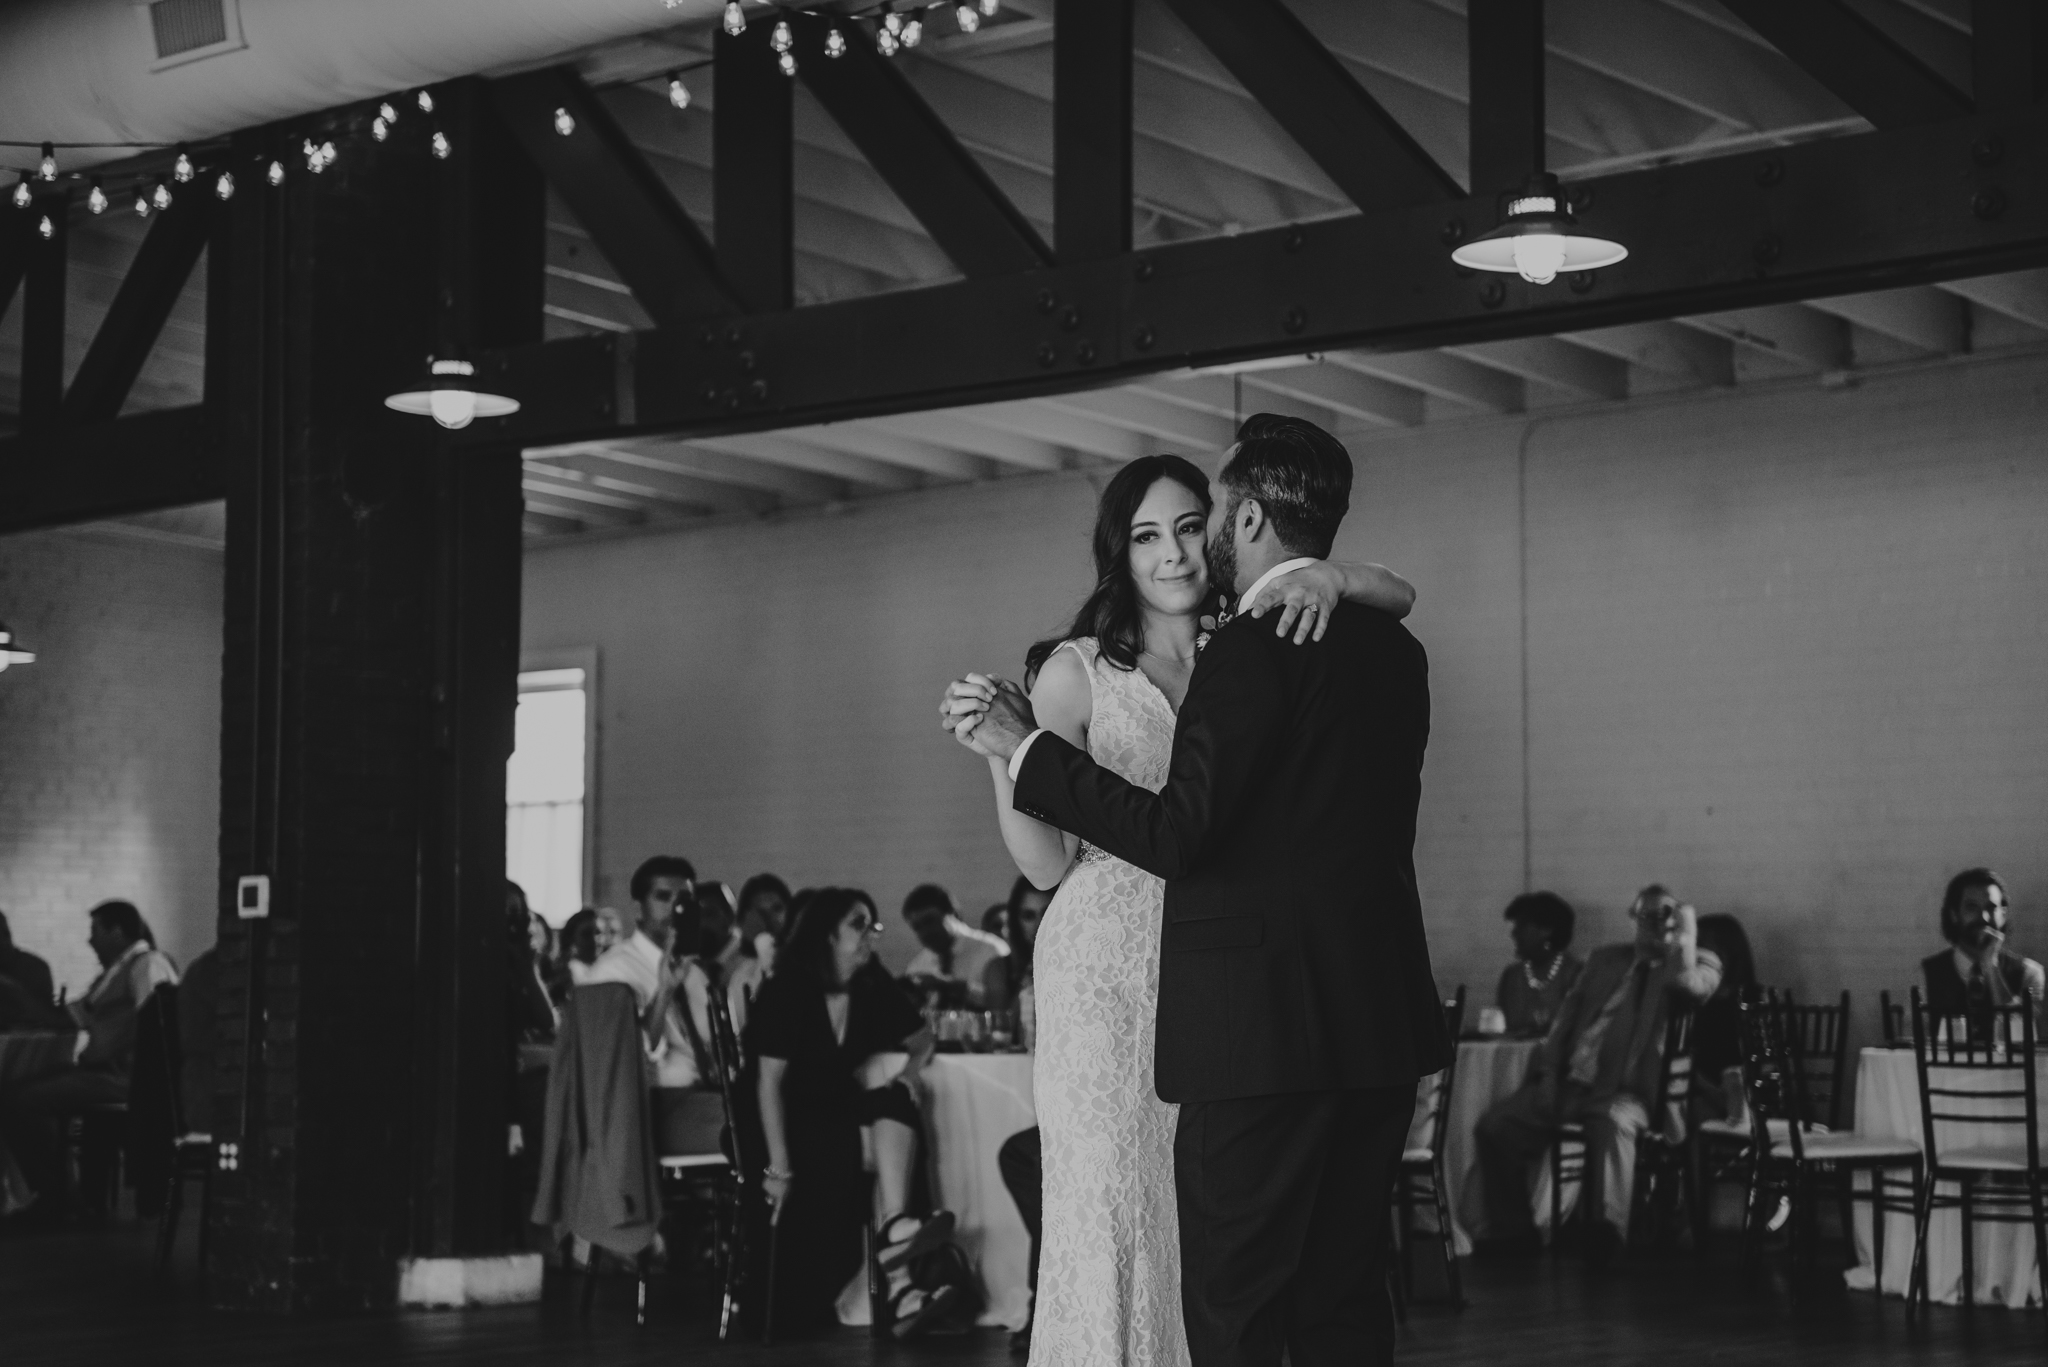 Raleigh-wedding-photographer-first-dance-traine-rose-trail-images.jpg